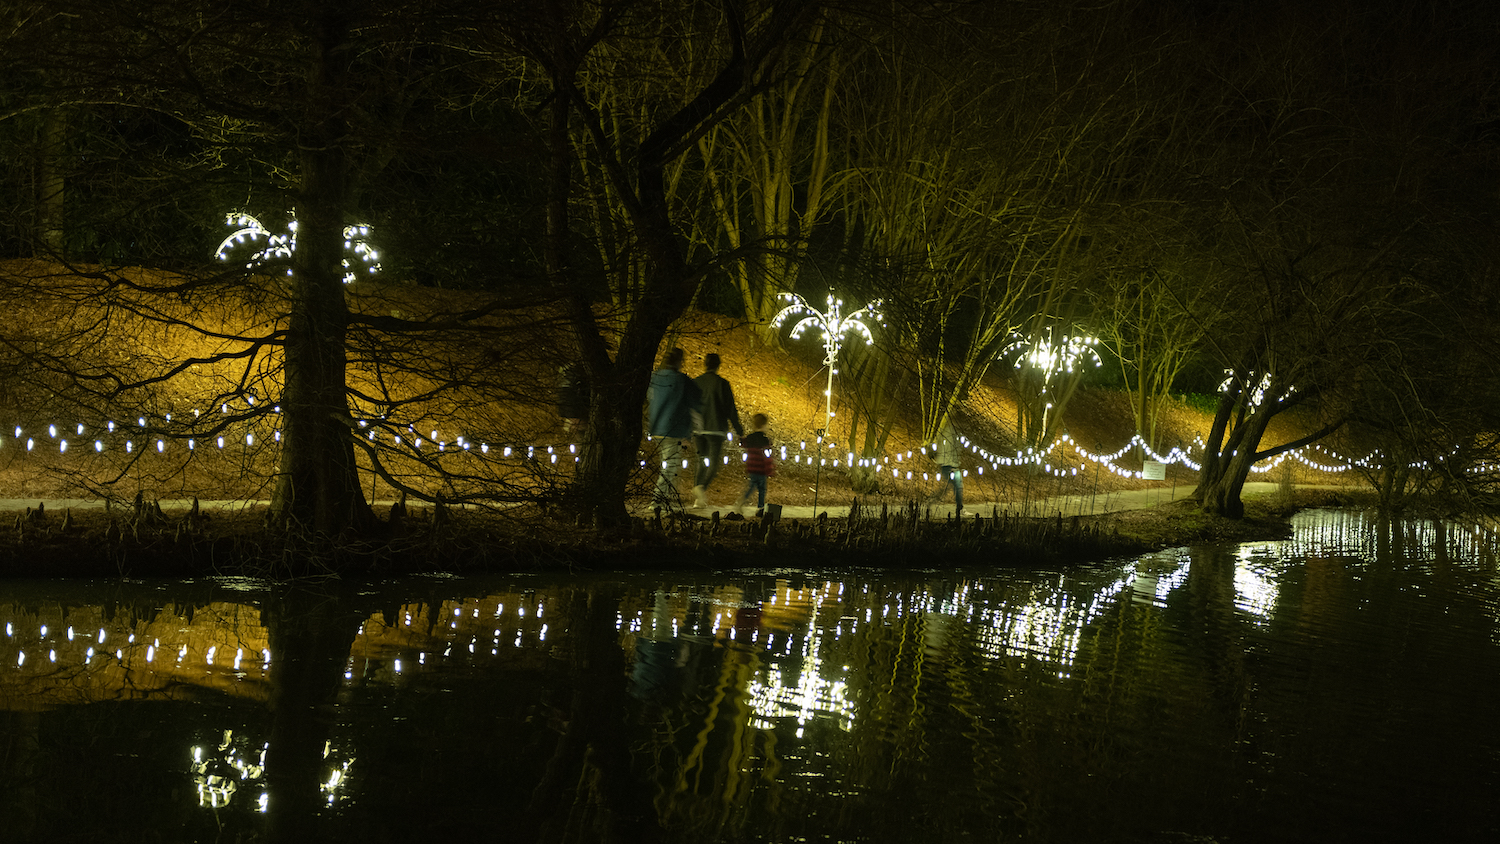 Christmas in Hopelands is one of the best things to do in December in Aiken in 2020.